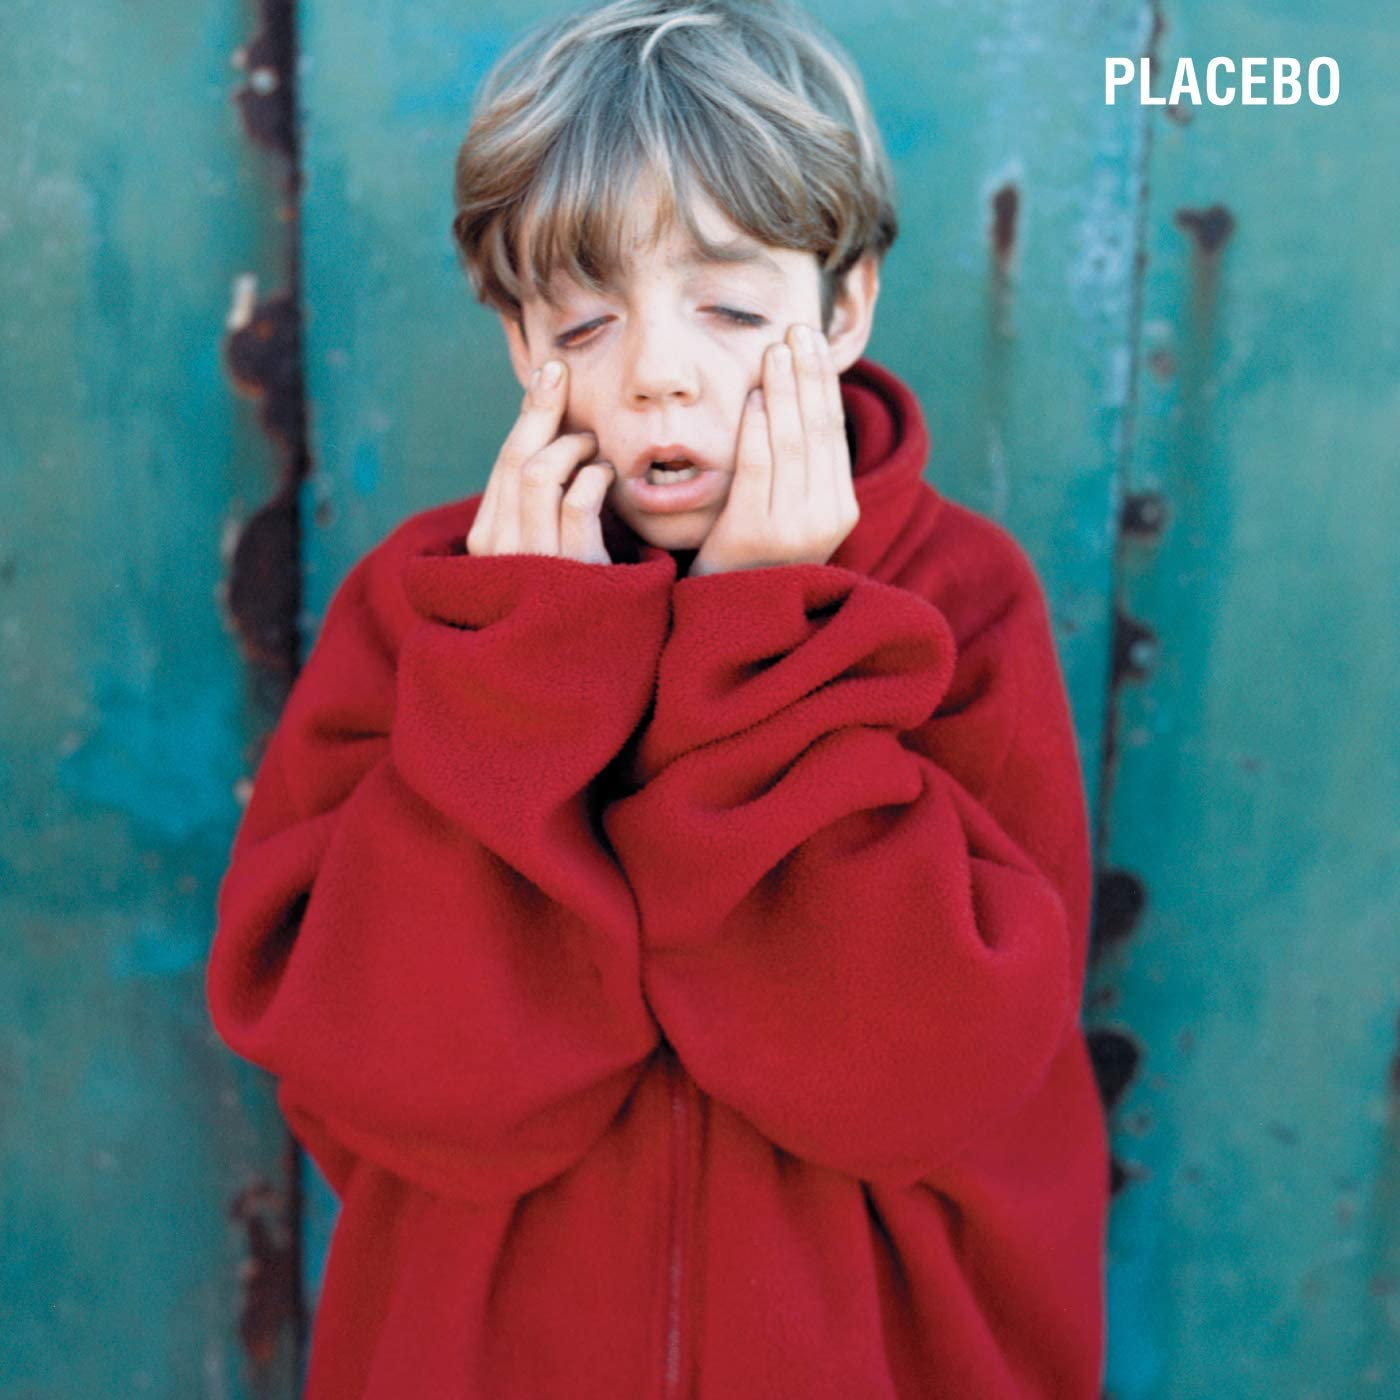 Placebo/Placebo [LP]